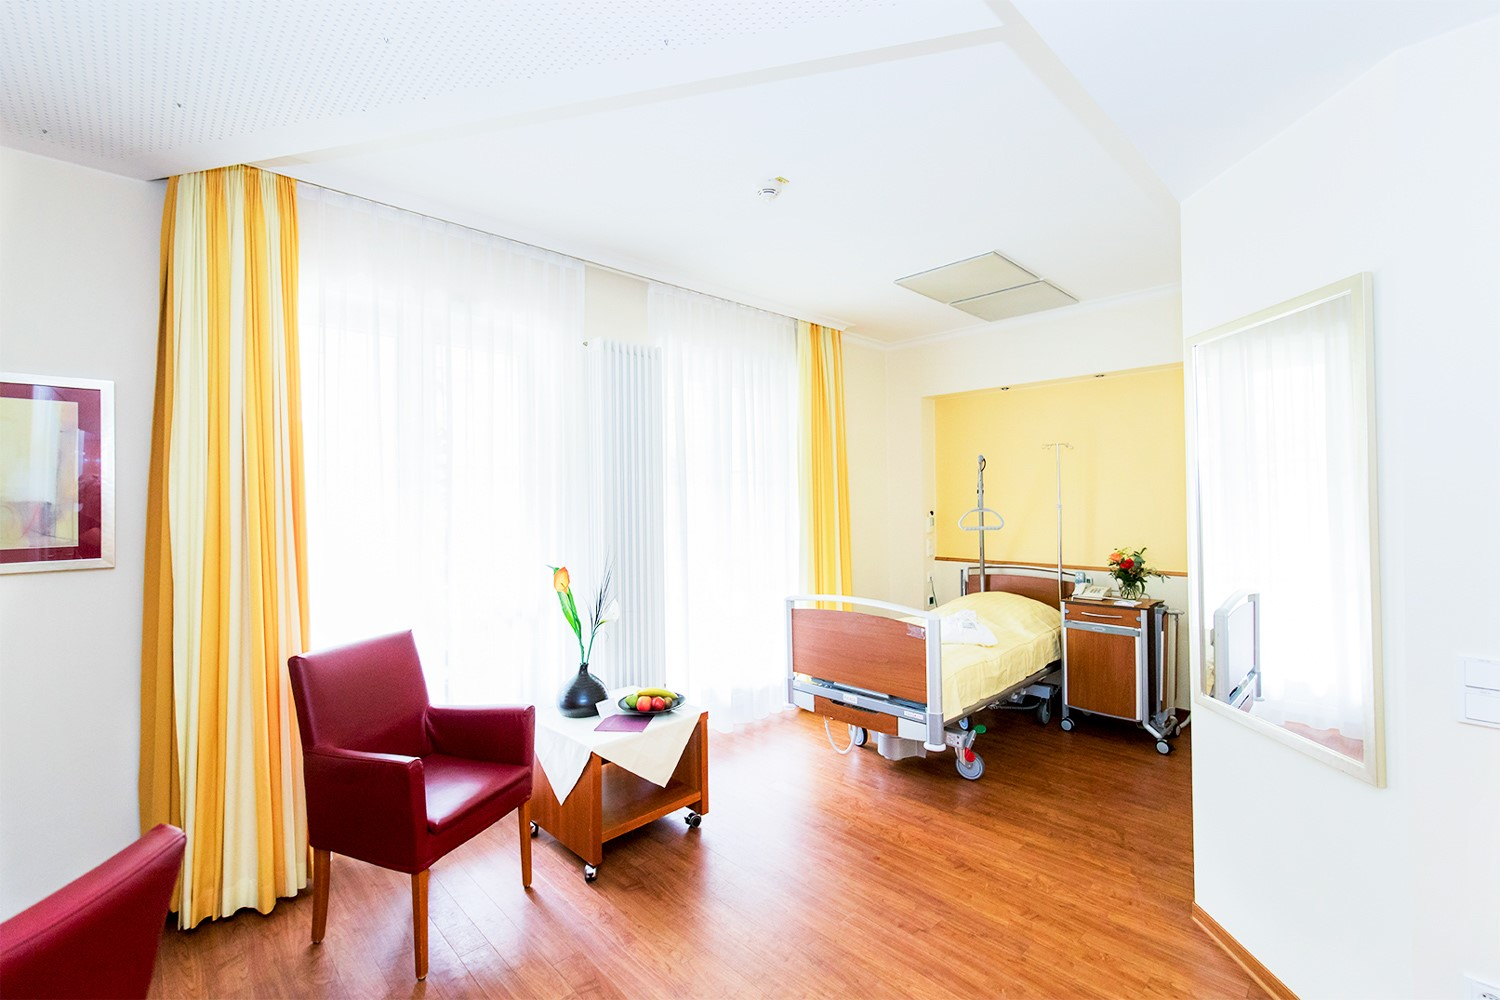 asklepios-privatklinik-bad-toelz